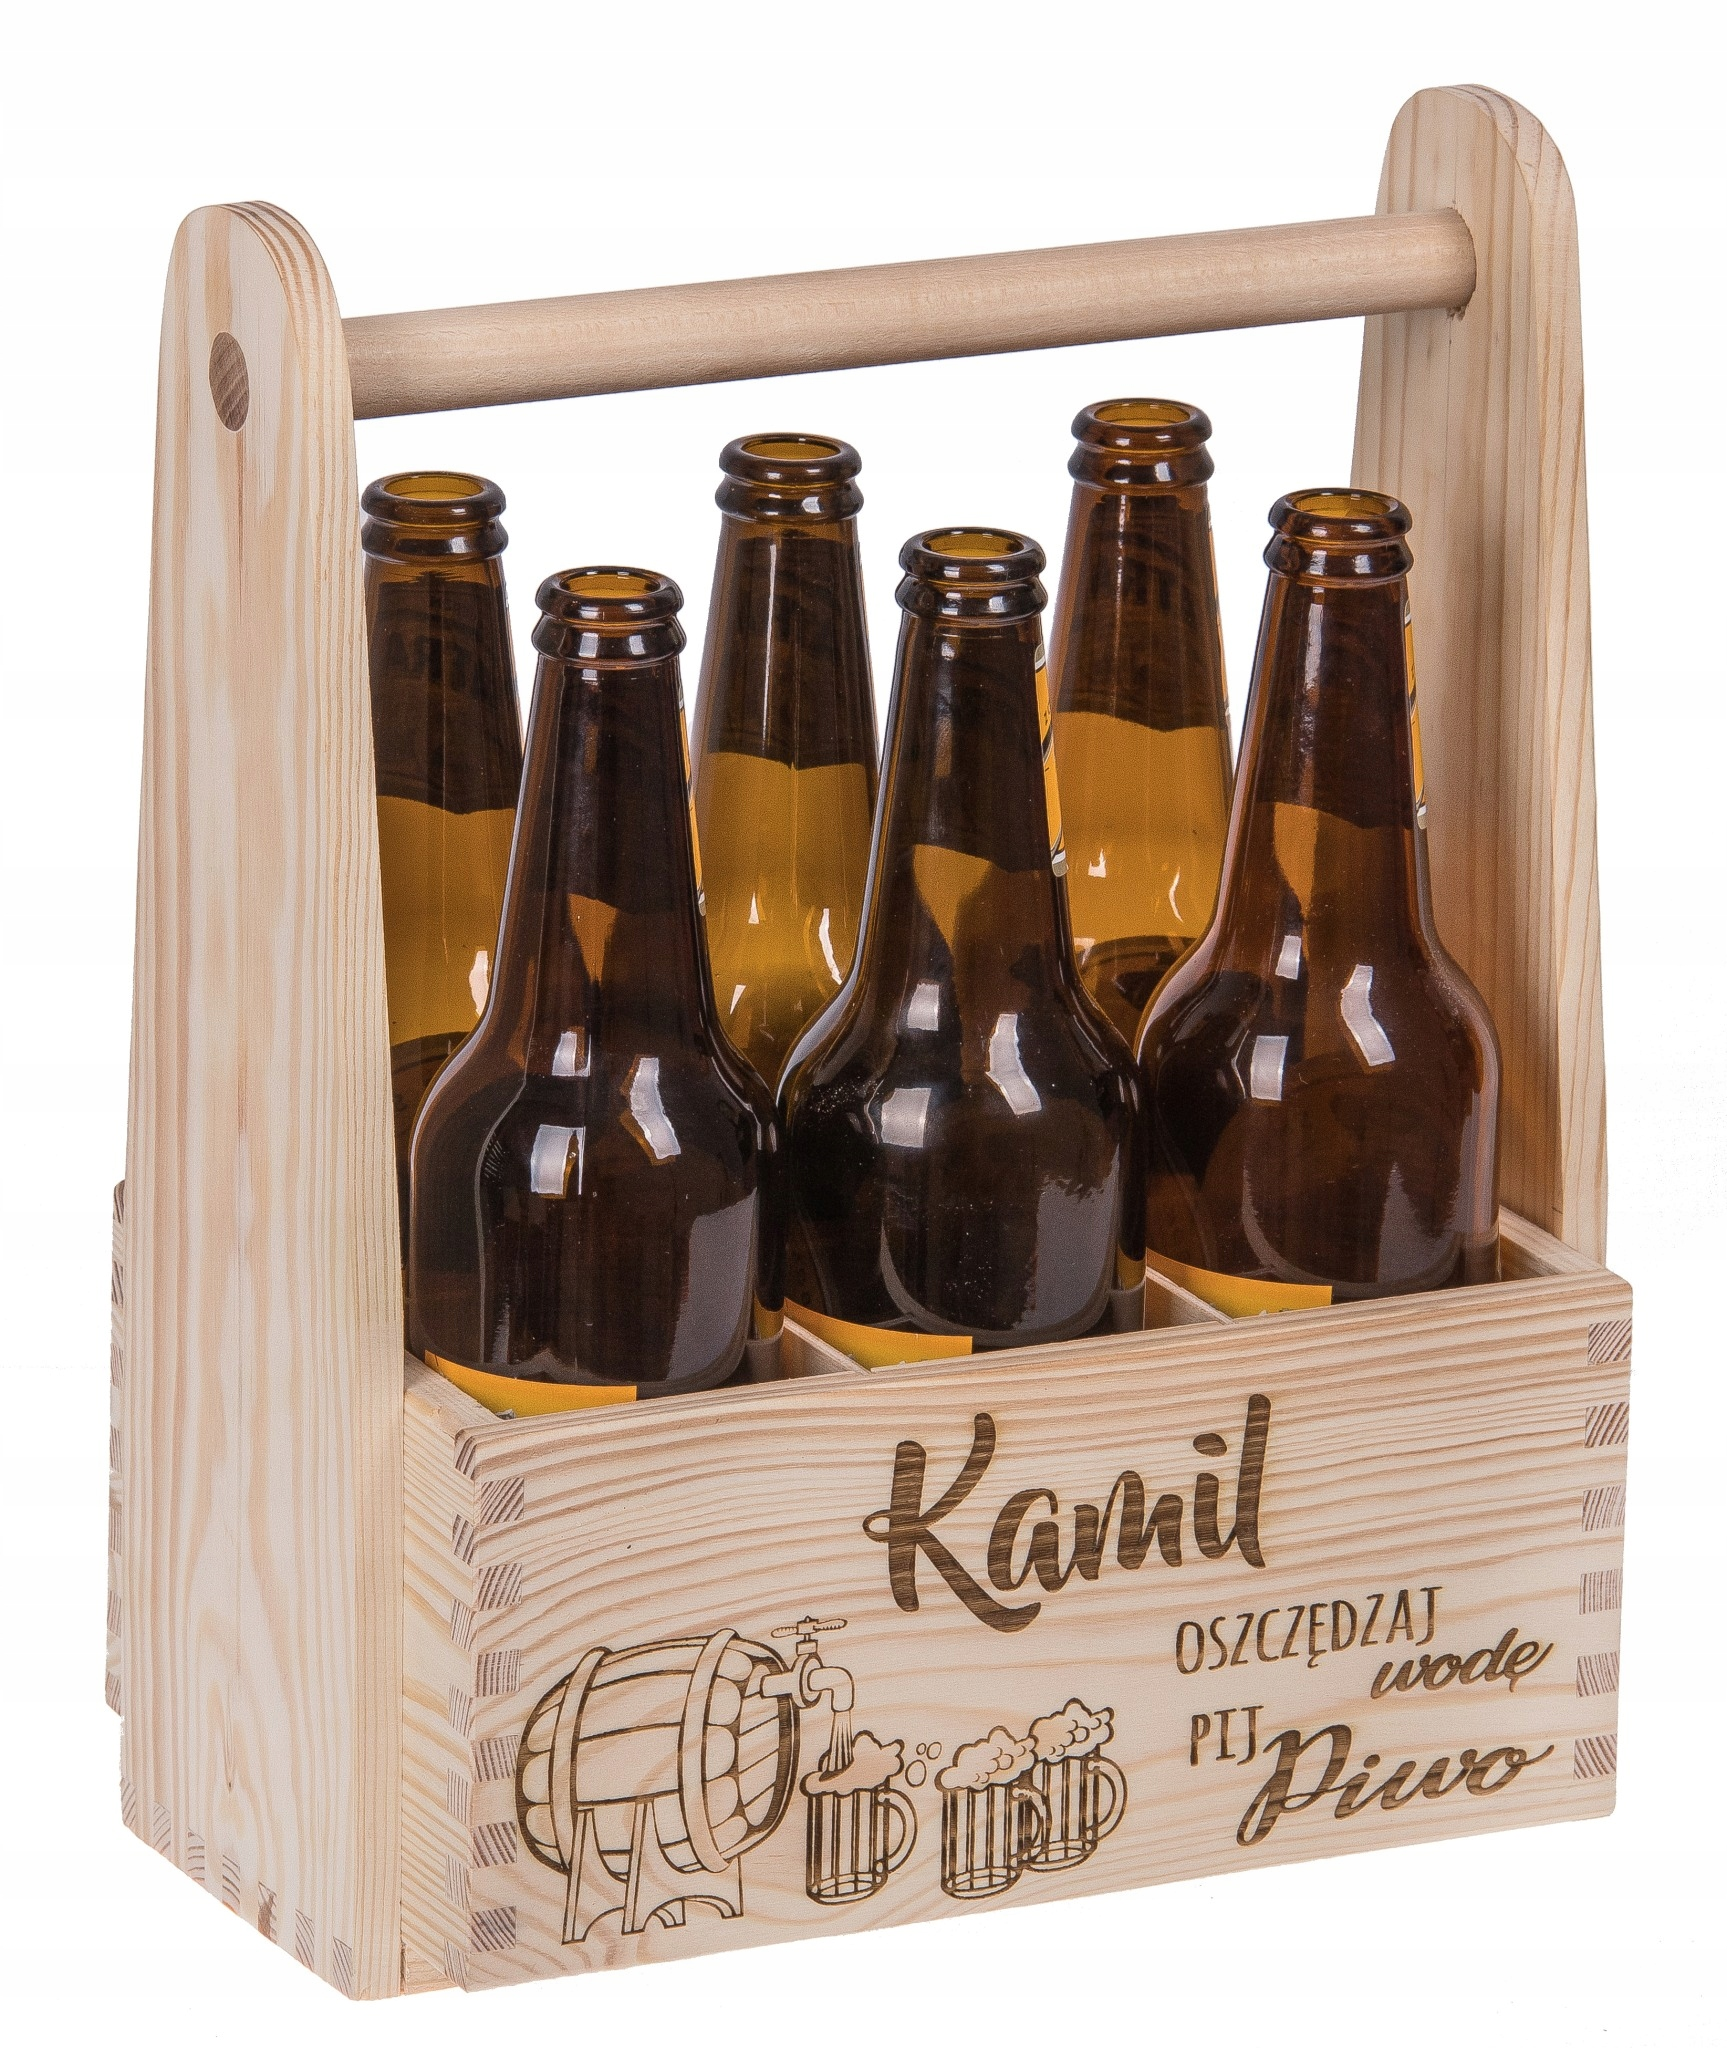 Item A case of BEER, carrying a gift for the birthday of the ENGRAVER!!